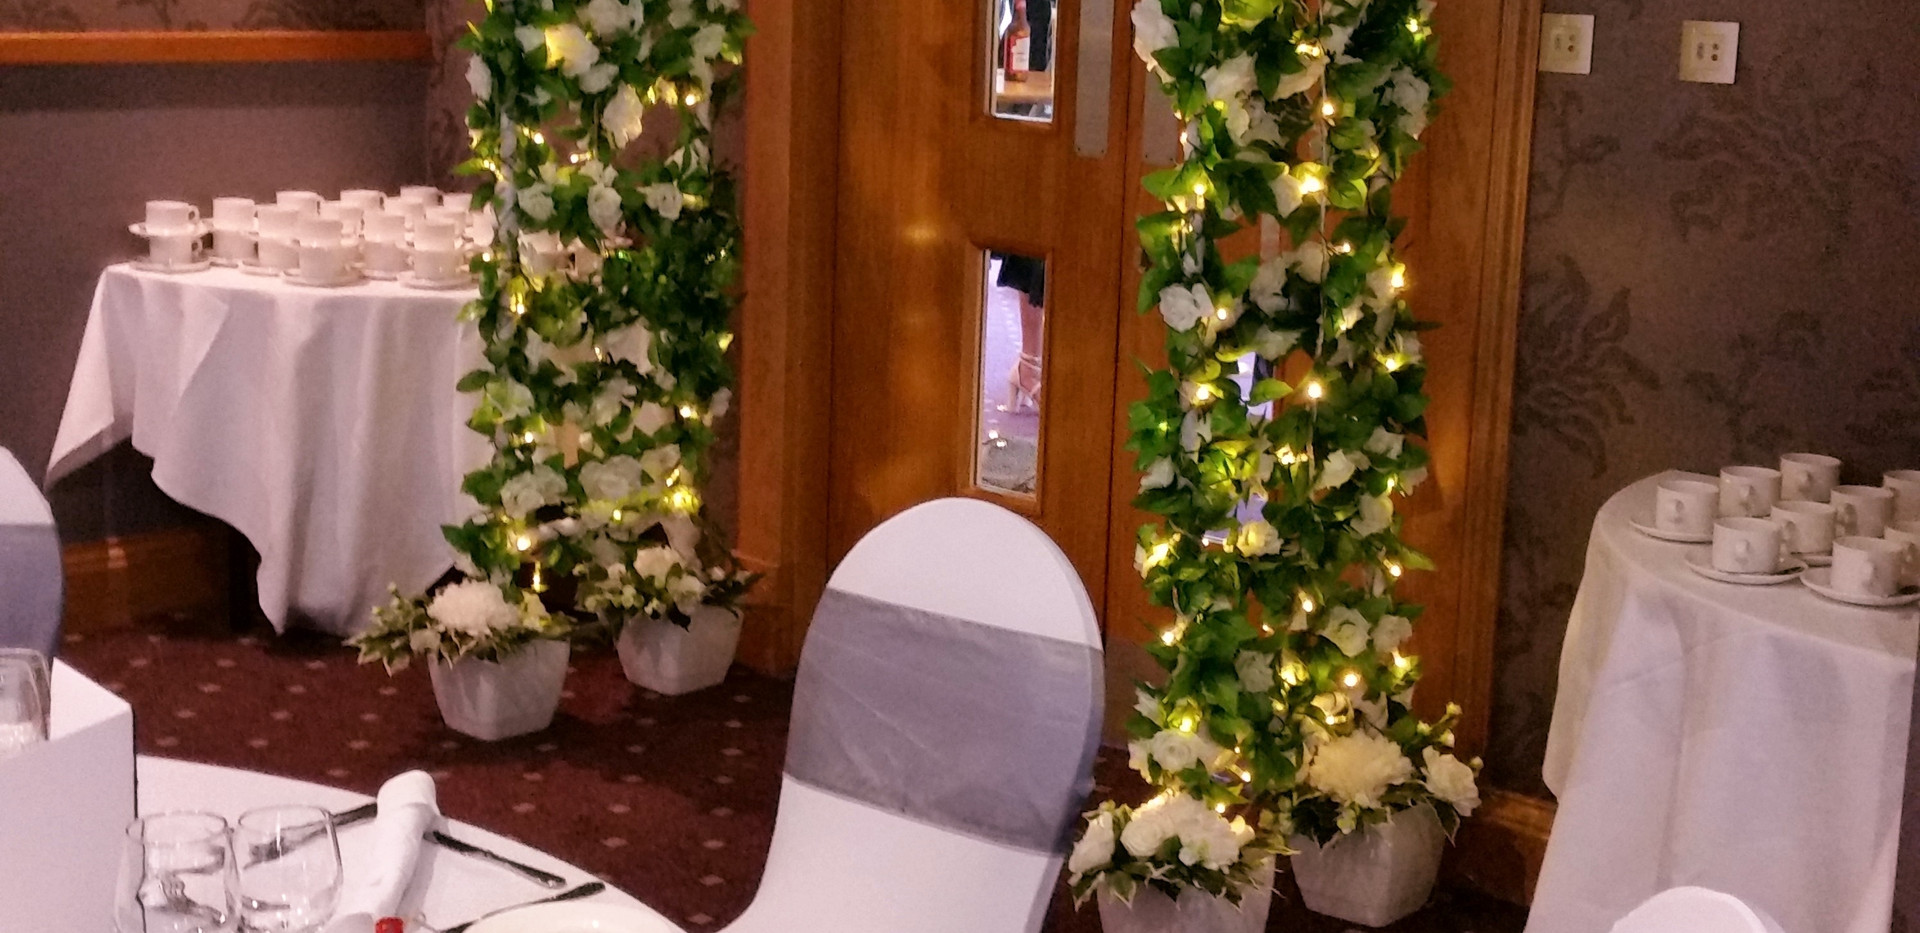 Our illuminated Wedding Archway